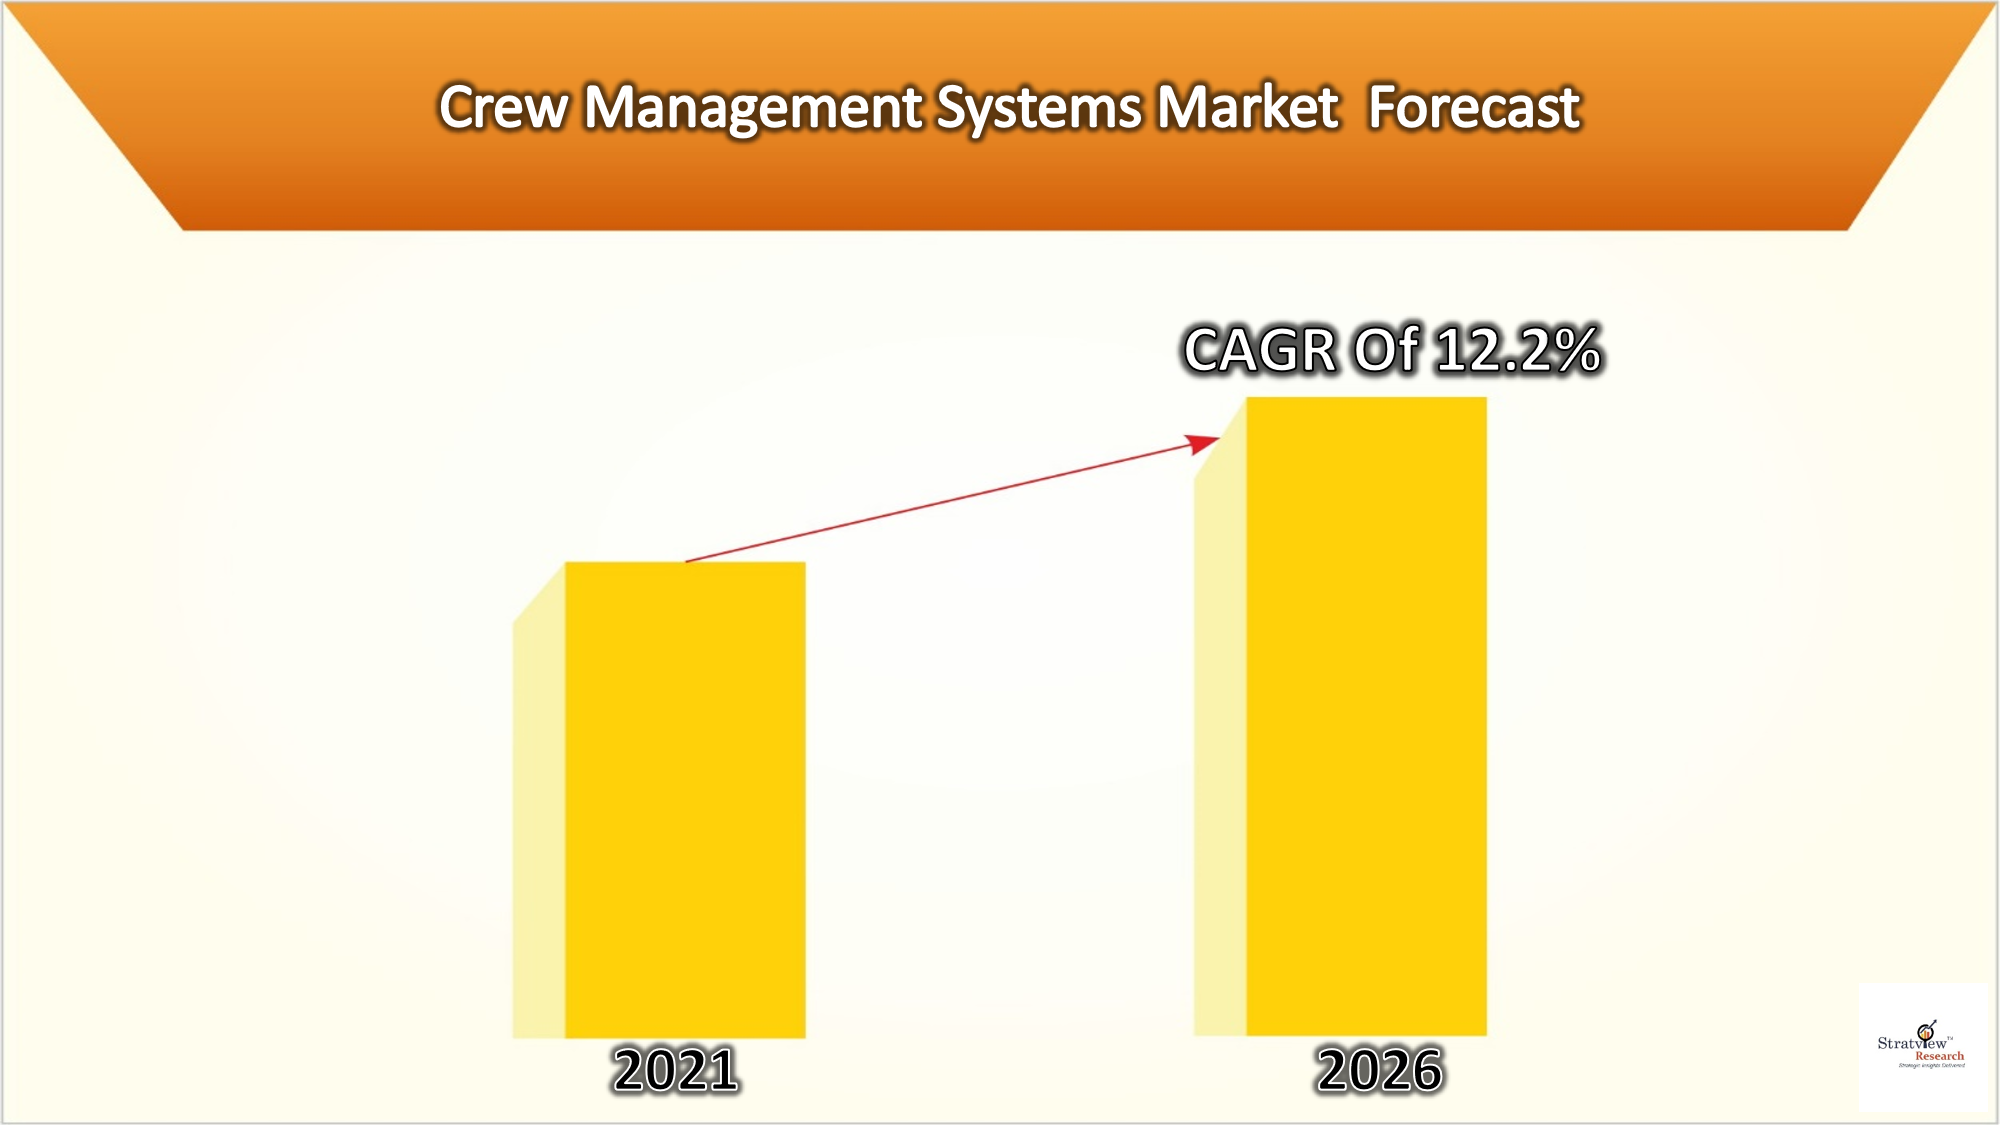 Crew Management Systems Market